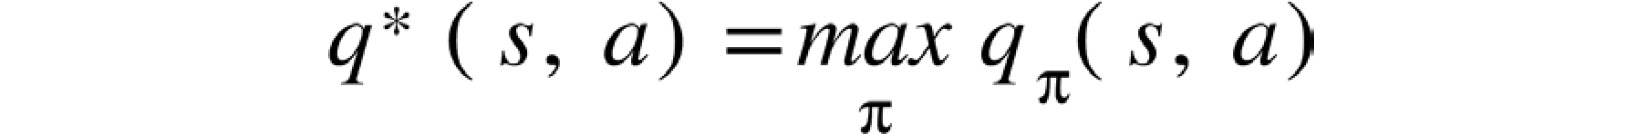 Figure 2.47: Optimal action-value function